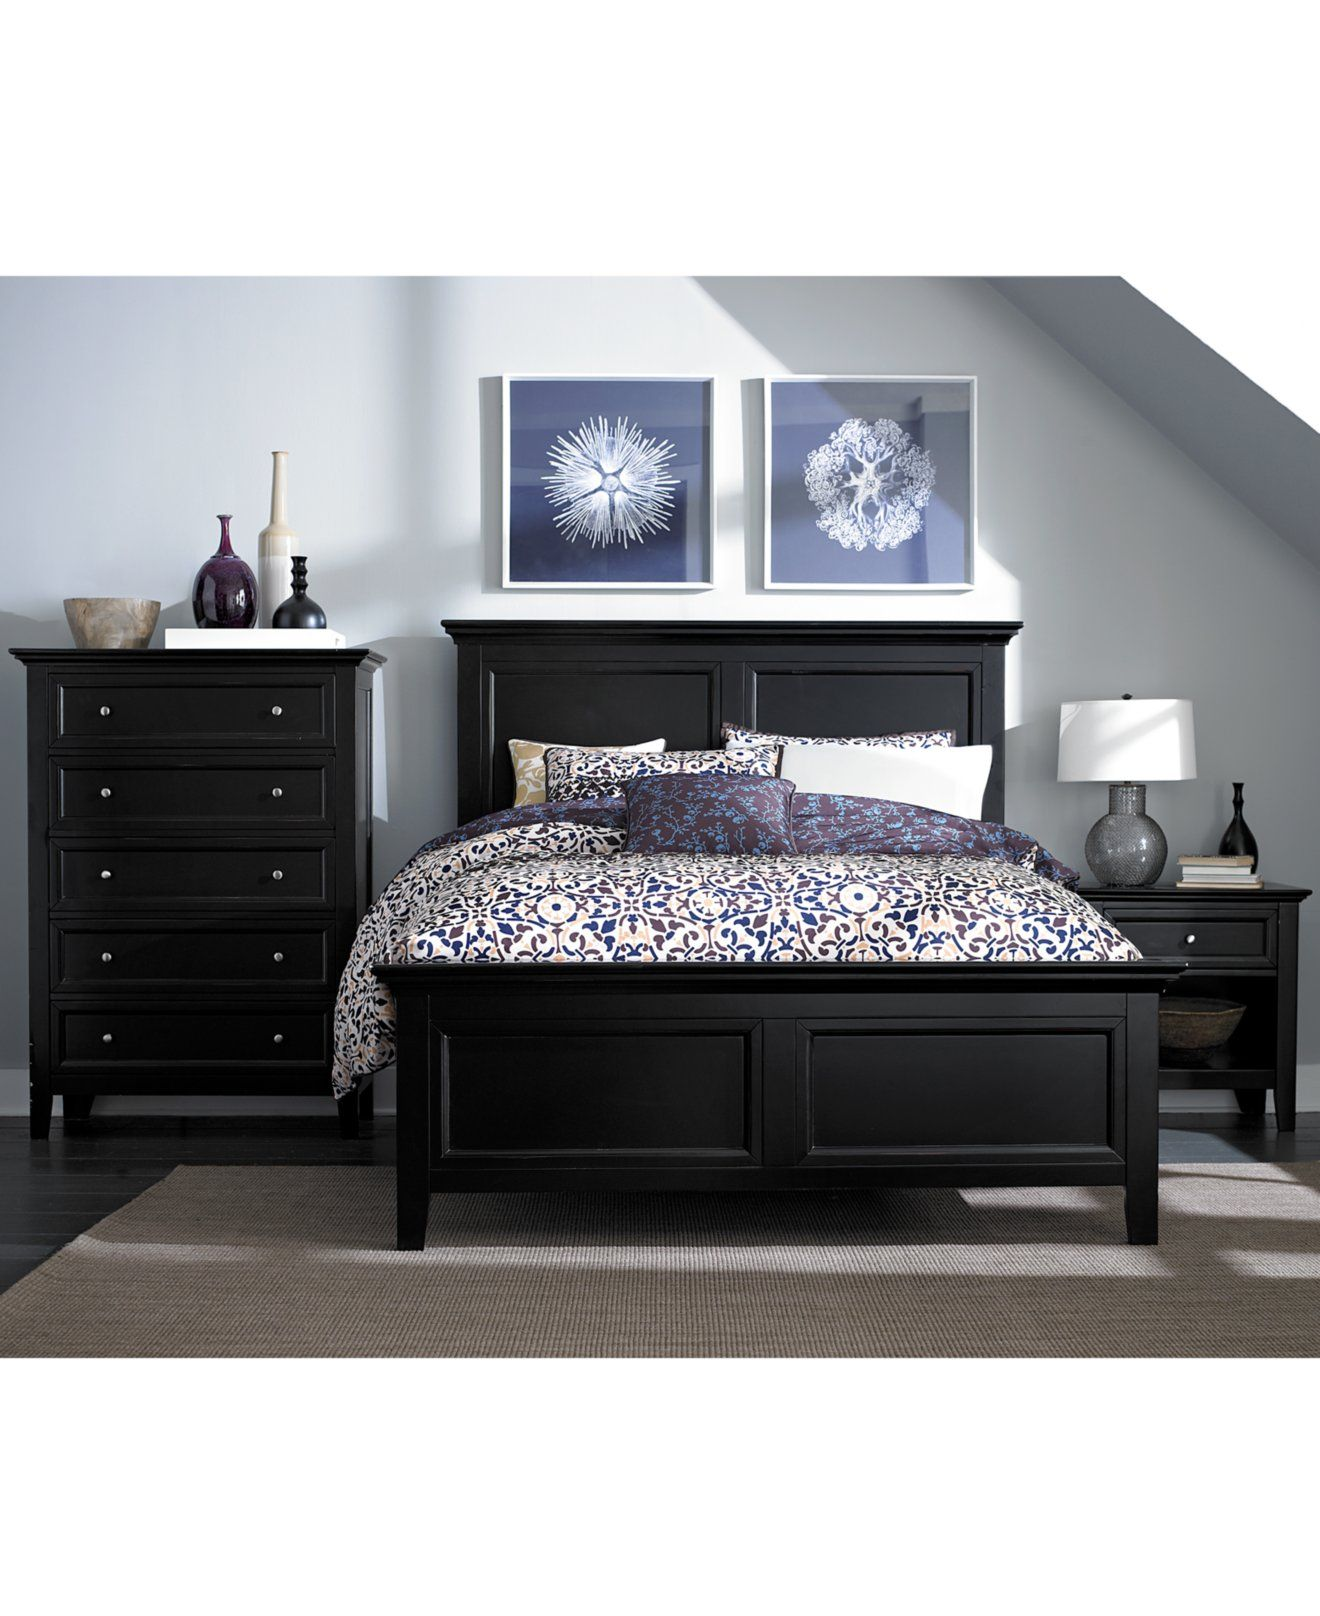 Captiva 5-Piece Queen Bedroom Set with Bachelors Chest - Bedroom